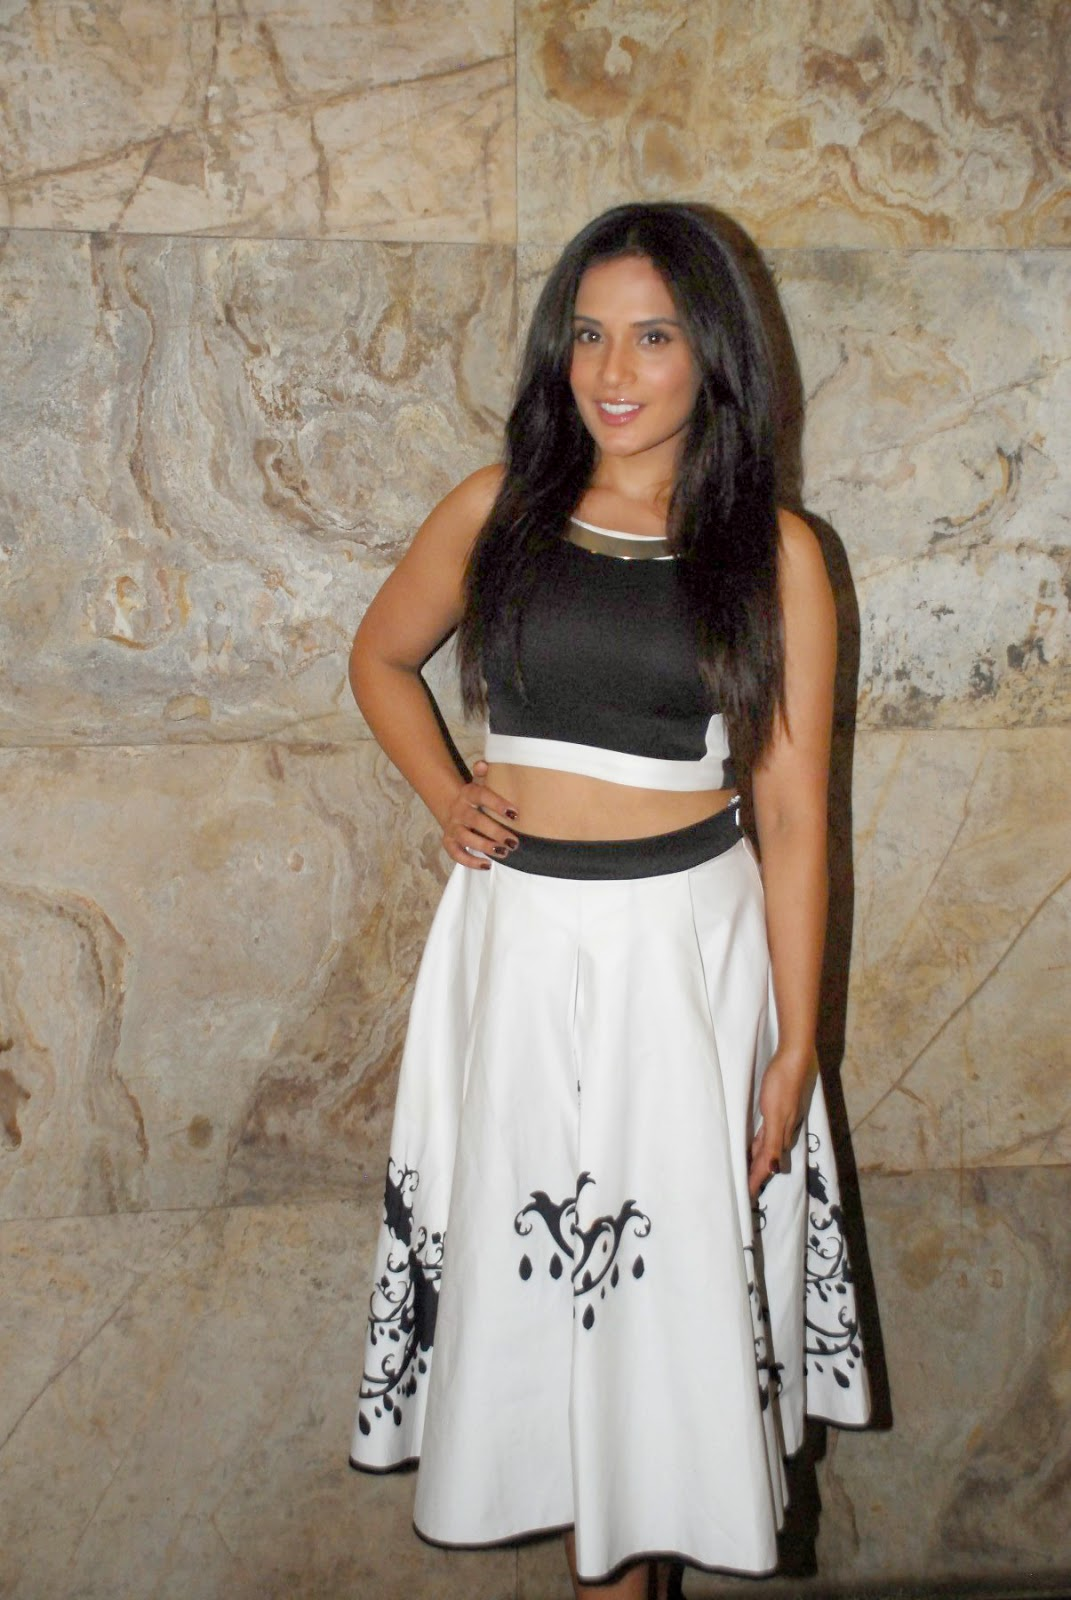 richa chadda hot navel hd pics